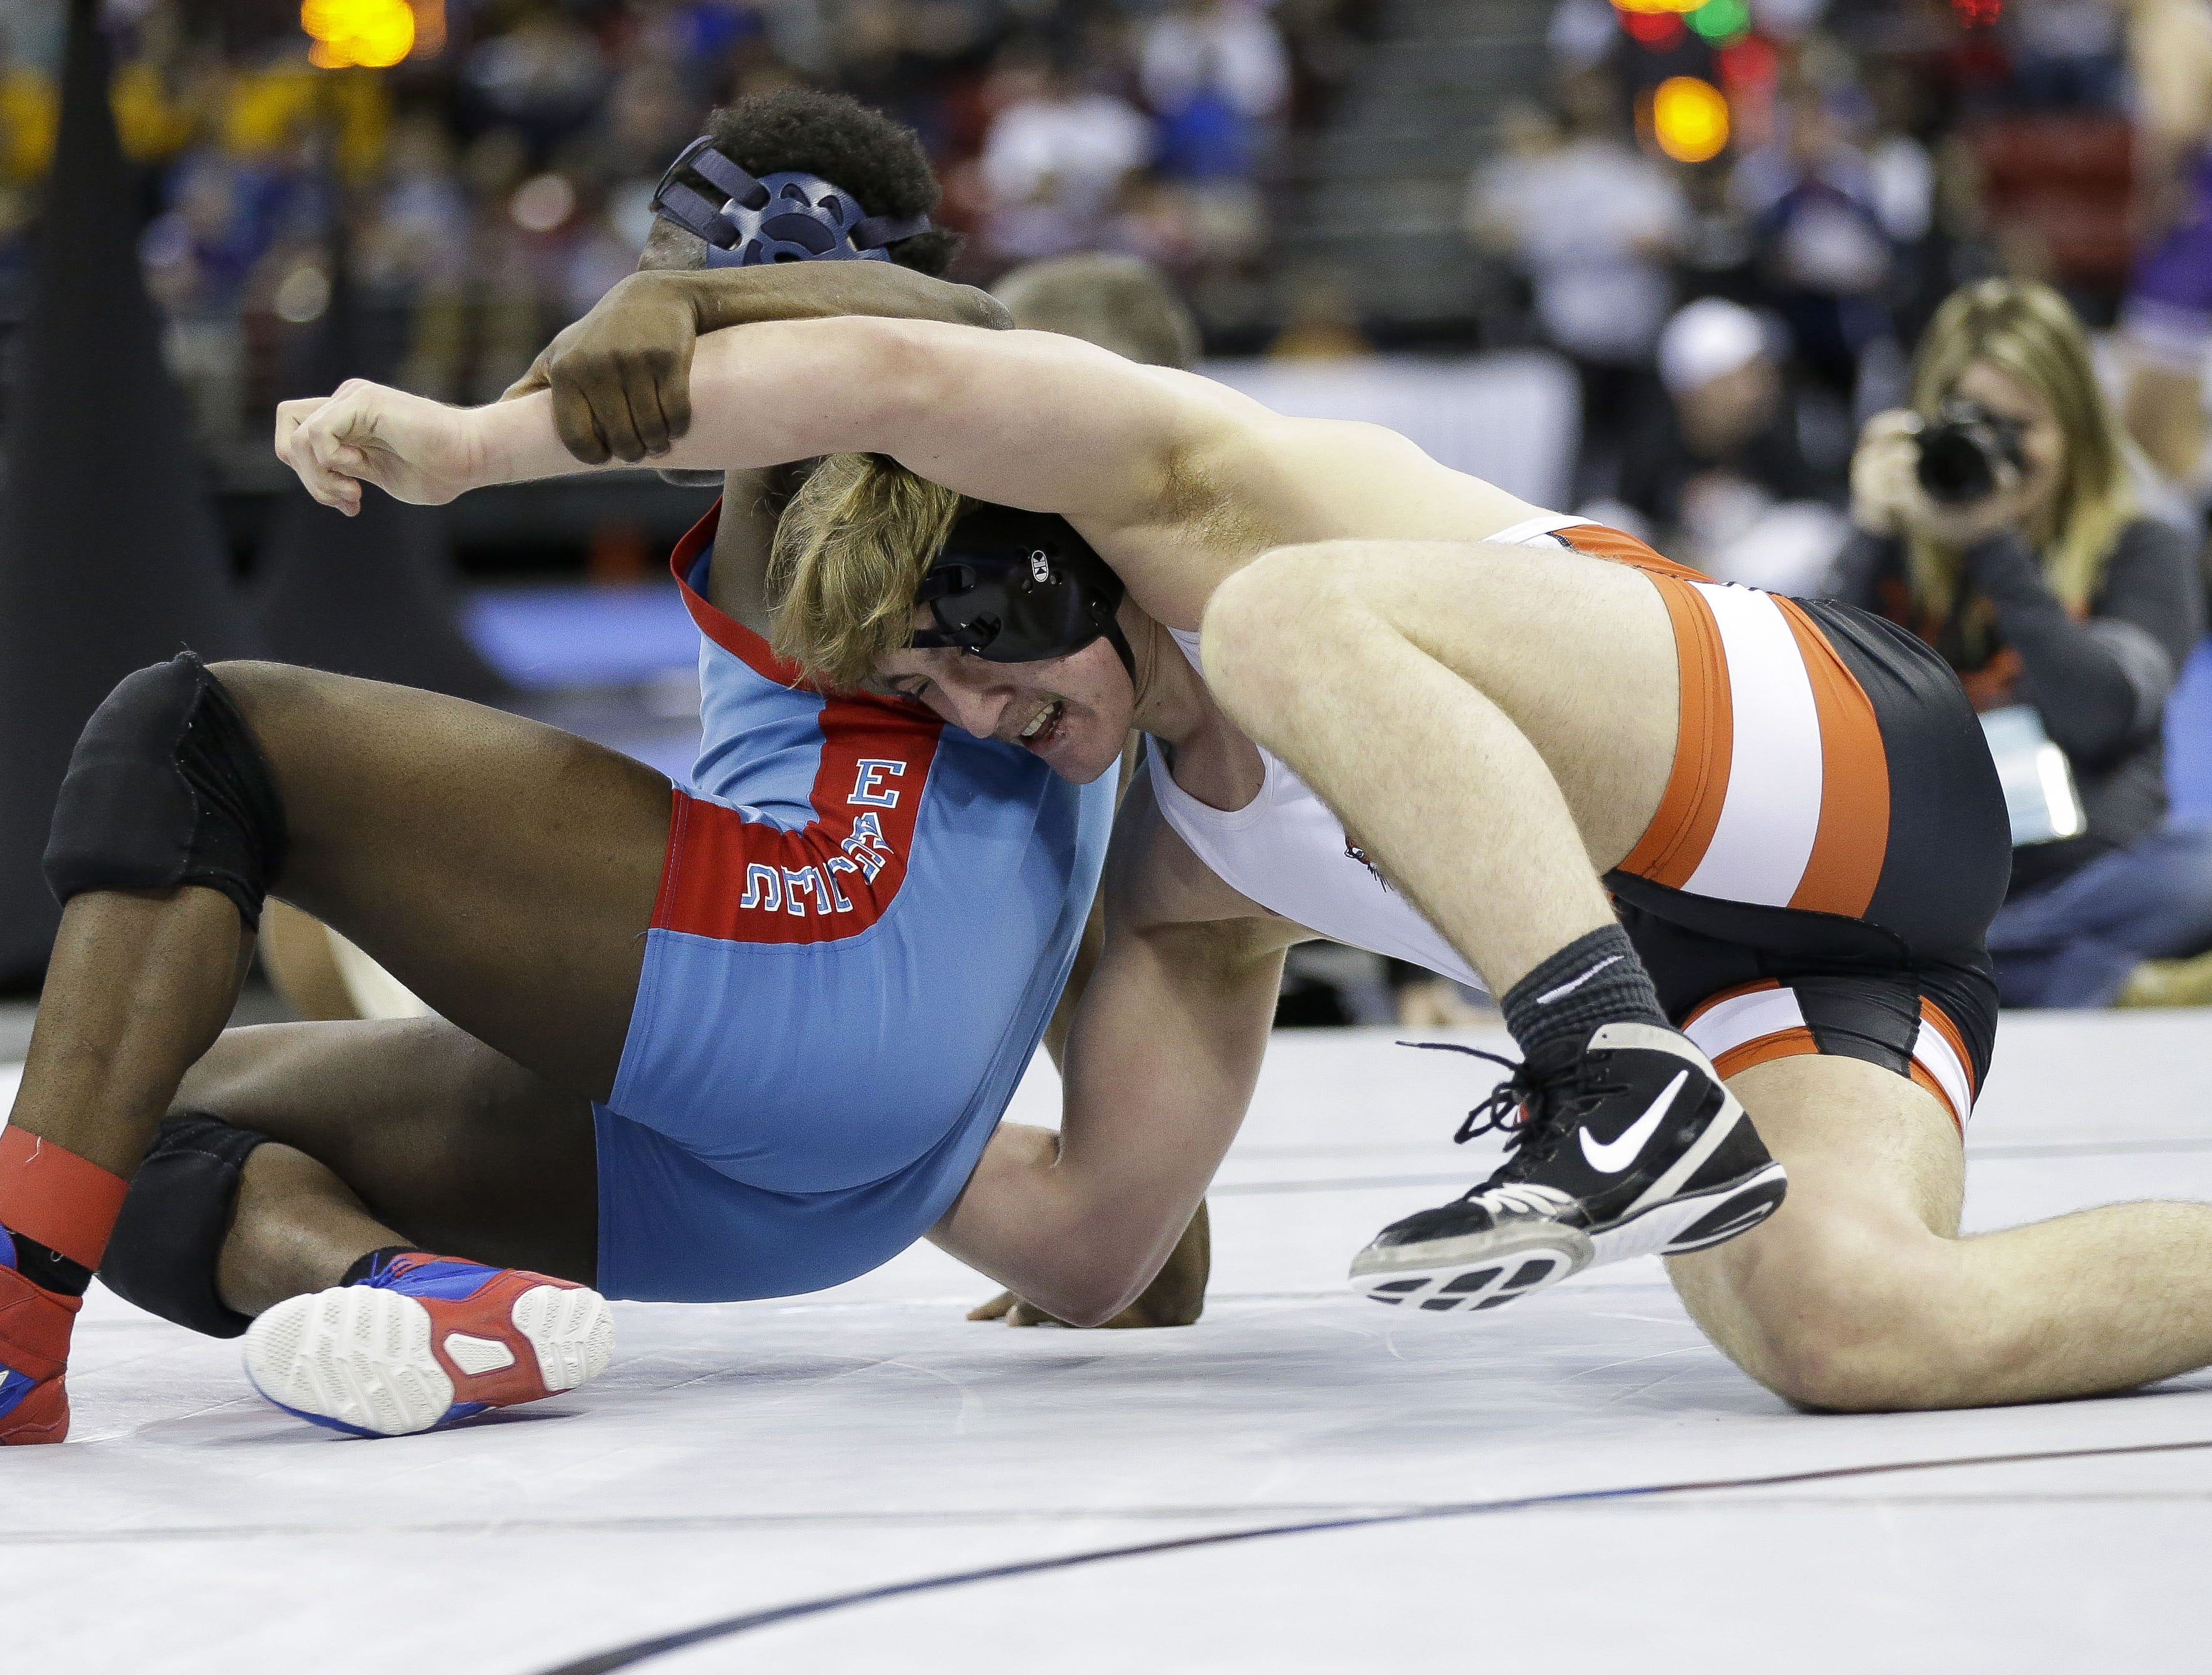 Marshfield's Sam Mitchell wrestles against Milwaukee Morse-Marshall's Azarion Waits in a Division 1 195-pound preliminary match during the WIAA state wrestling tournament on Thursday, February 21, 2019, at the Kohl Center in Madison, Wis. Tork Mason/USA TODAY NETWORK-Wisconsin